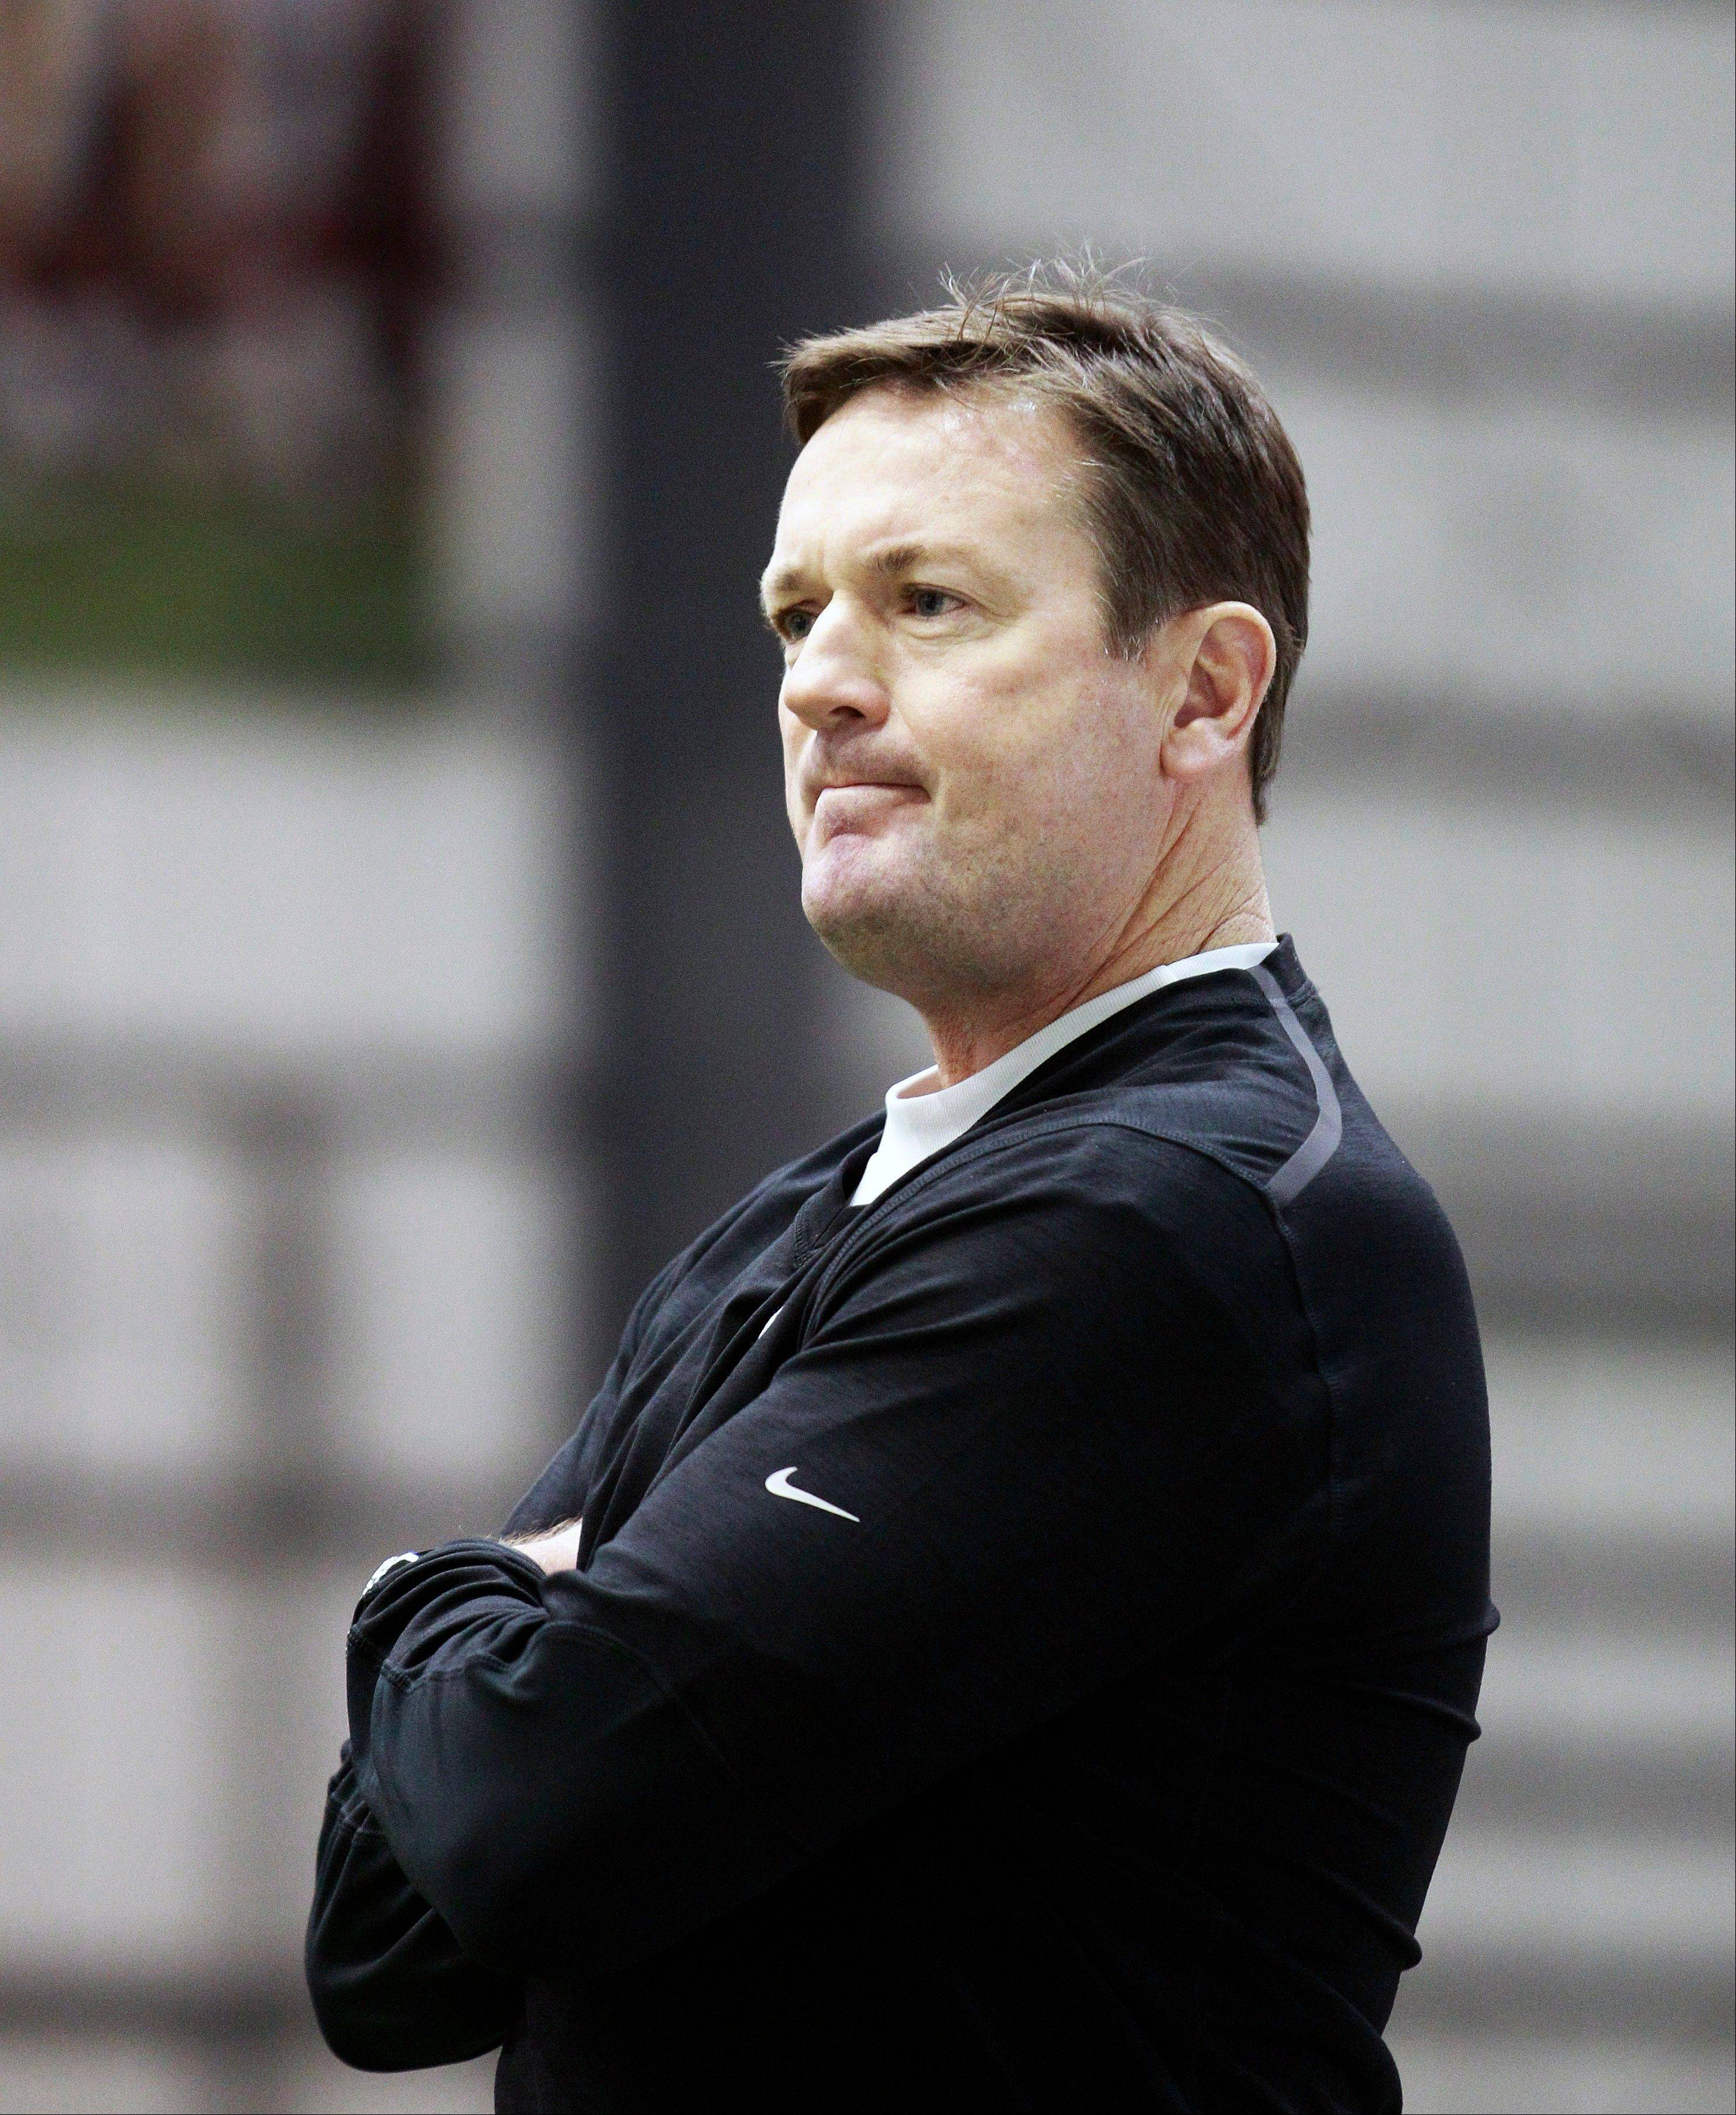 Oklahoma head coach Bob Stoops watches a workout Saturday at the New Orleans Saints practice facility in Metairie, La. Oklahoma will play Alabama in the Sugar Bowl on Thursday.